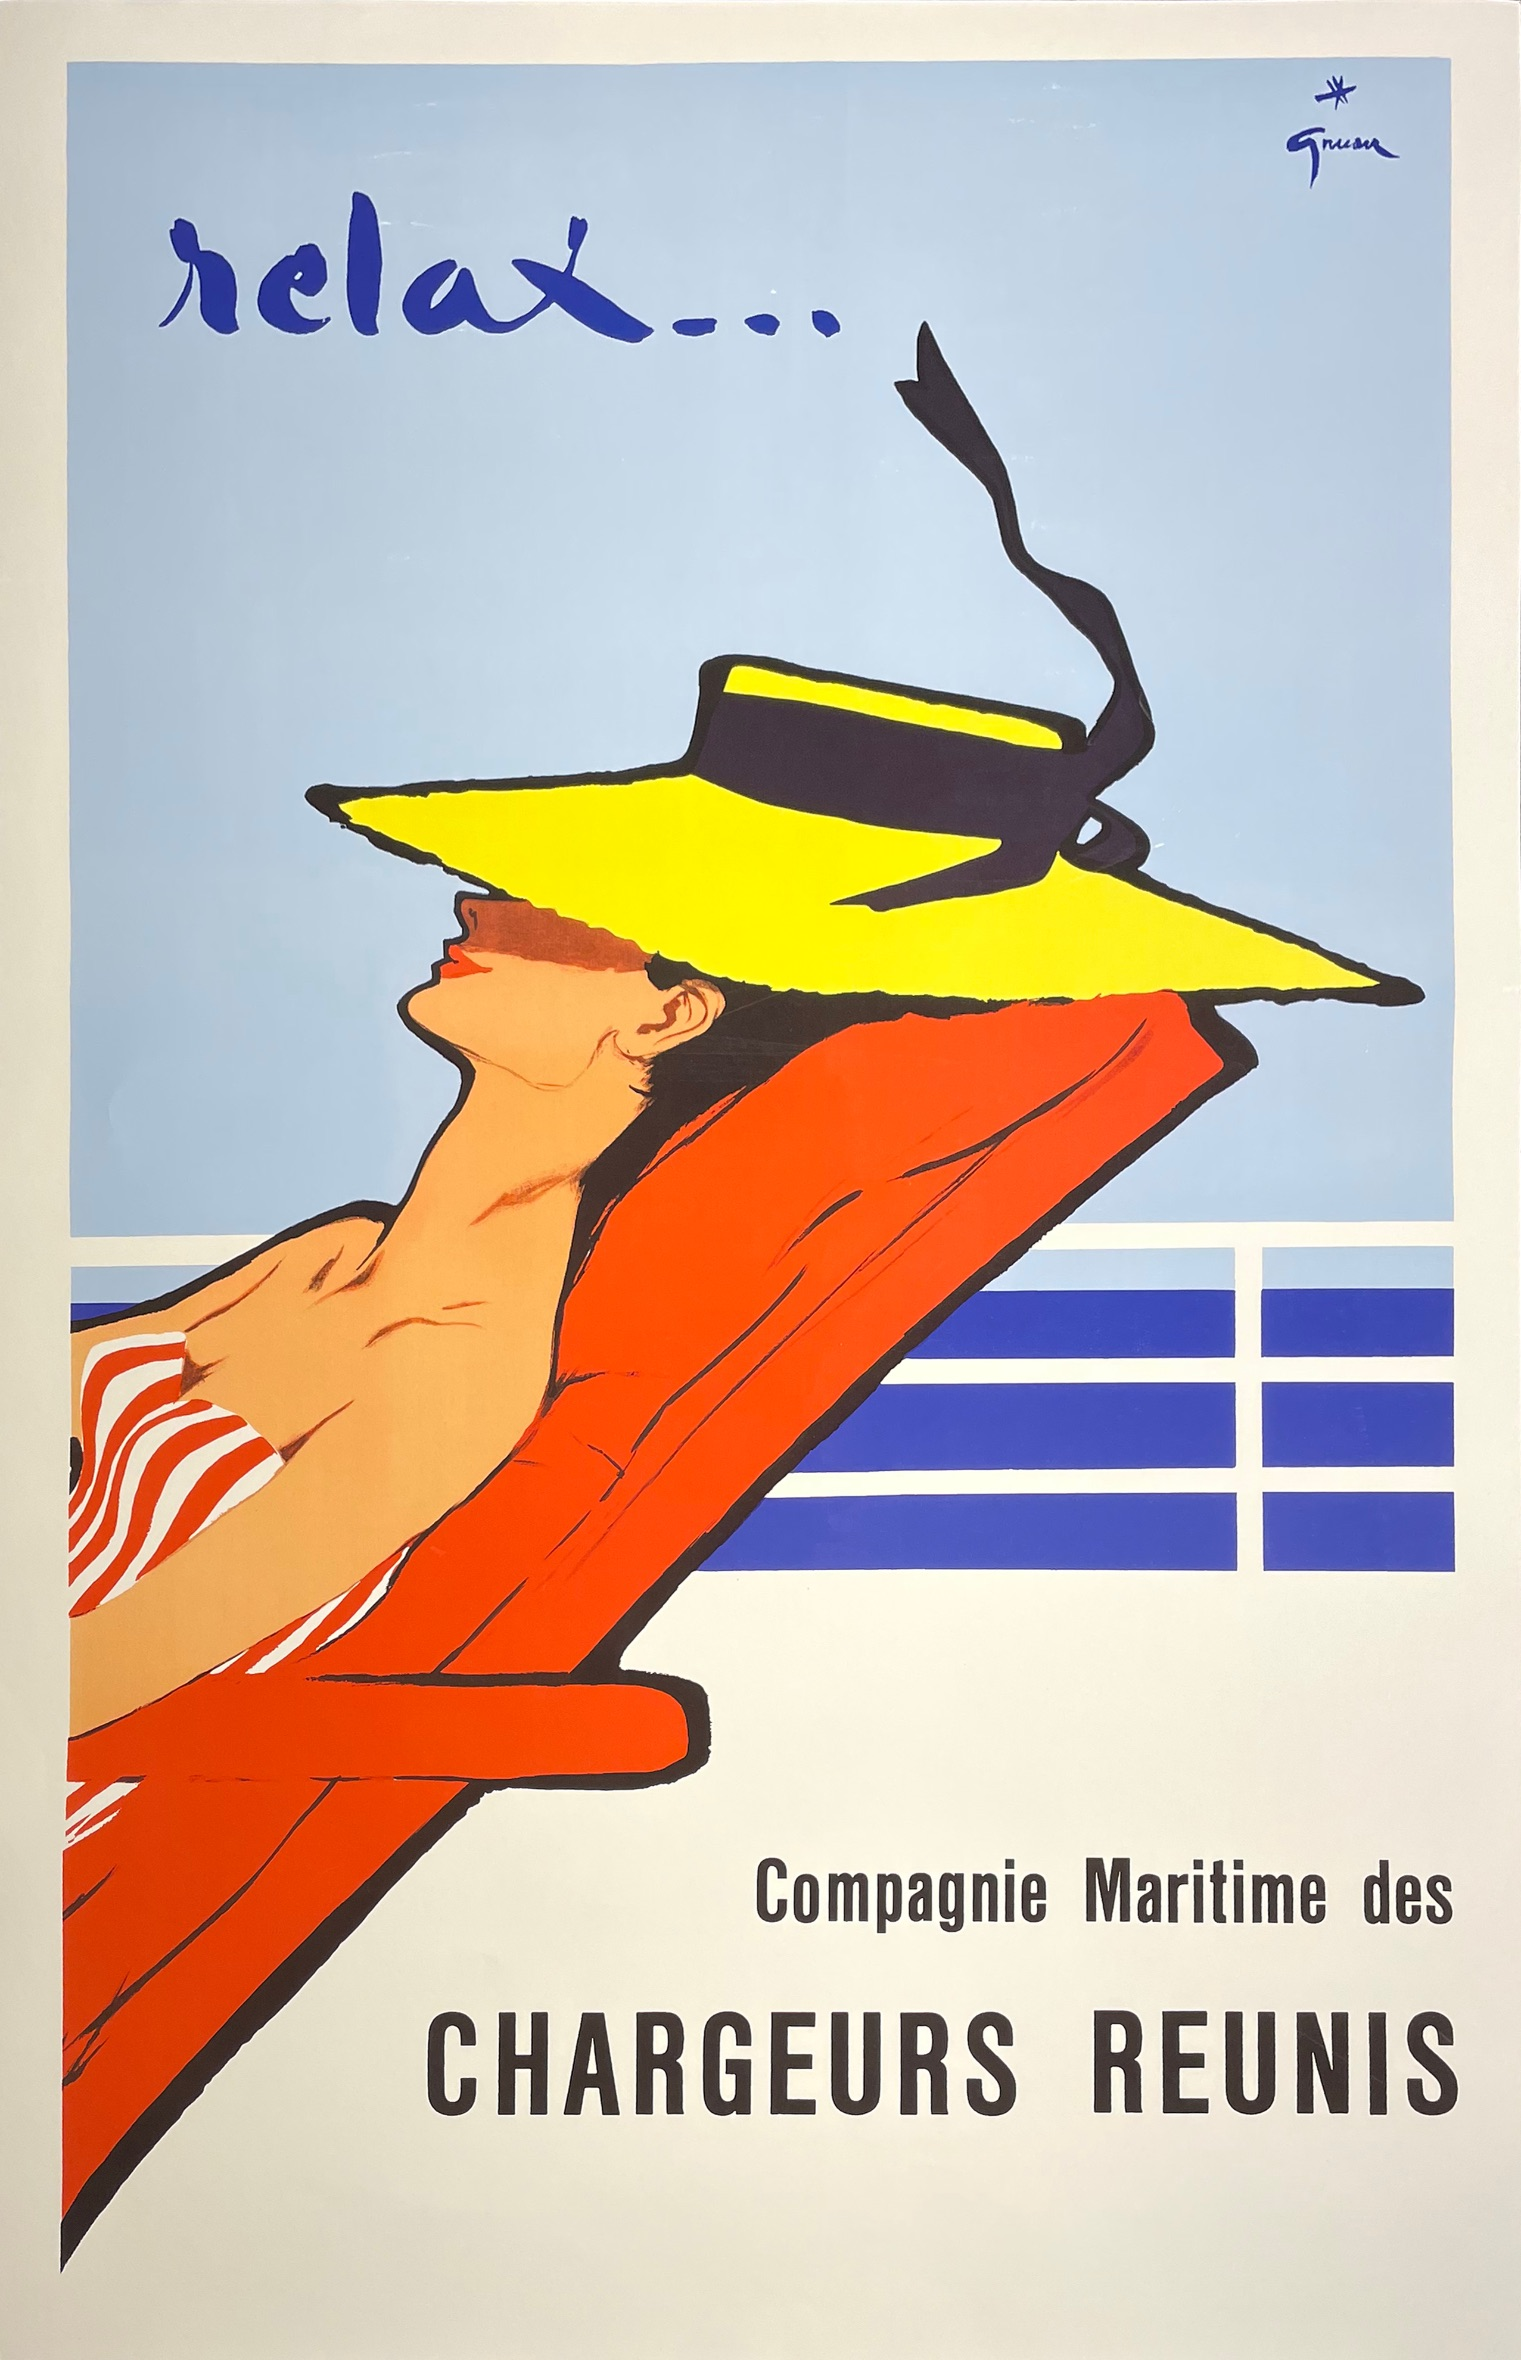 After Rene Grau, Compagnie Maritime de Chargeurs reunis; relax … lithographic poster, 91cm x 61cm